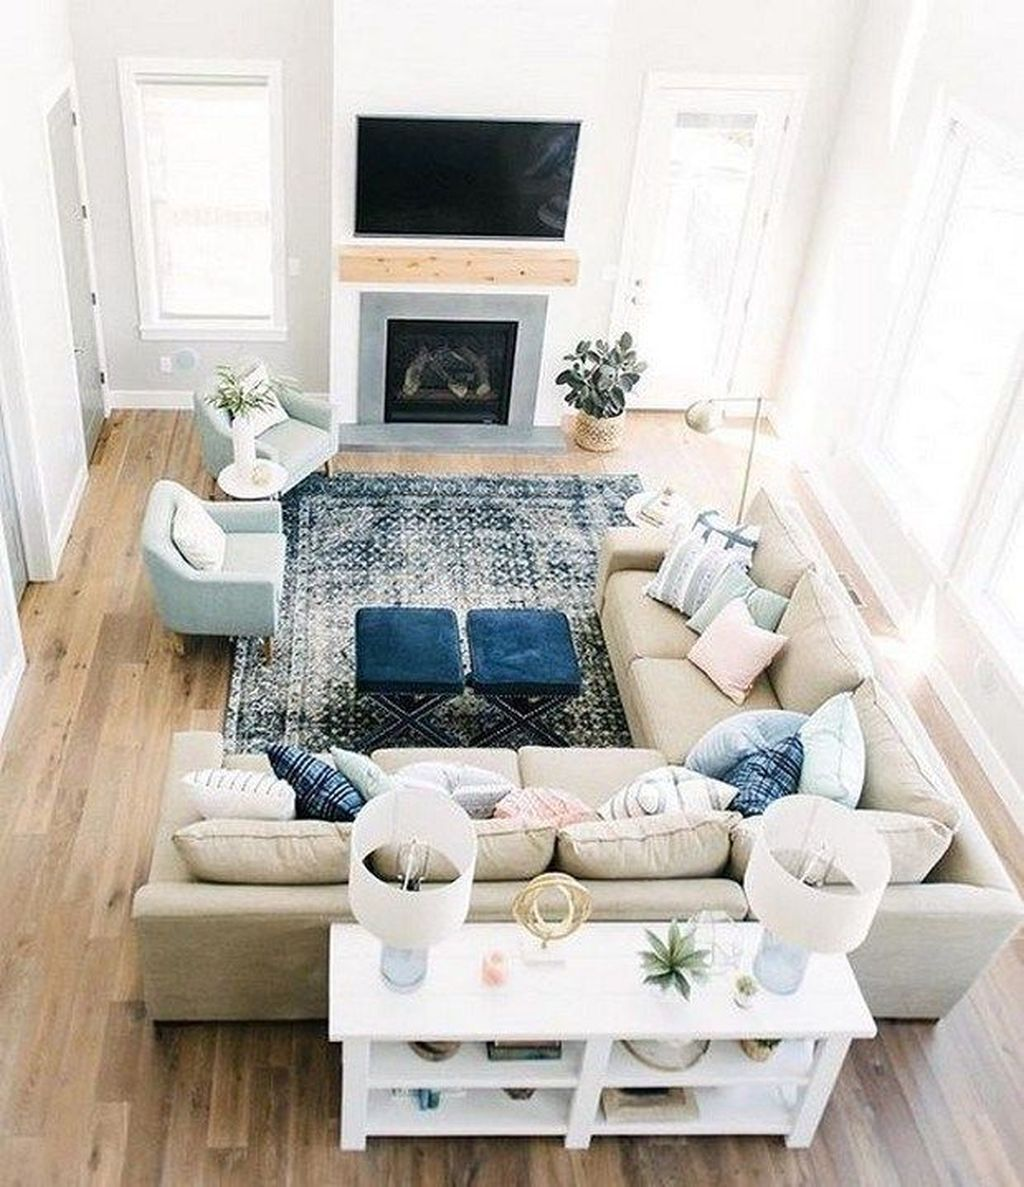 33 The Best Small Living Room Layout Ideas In 2020 Small Li